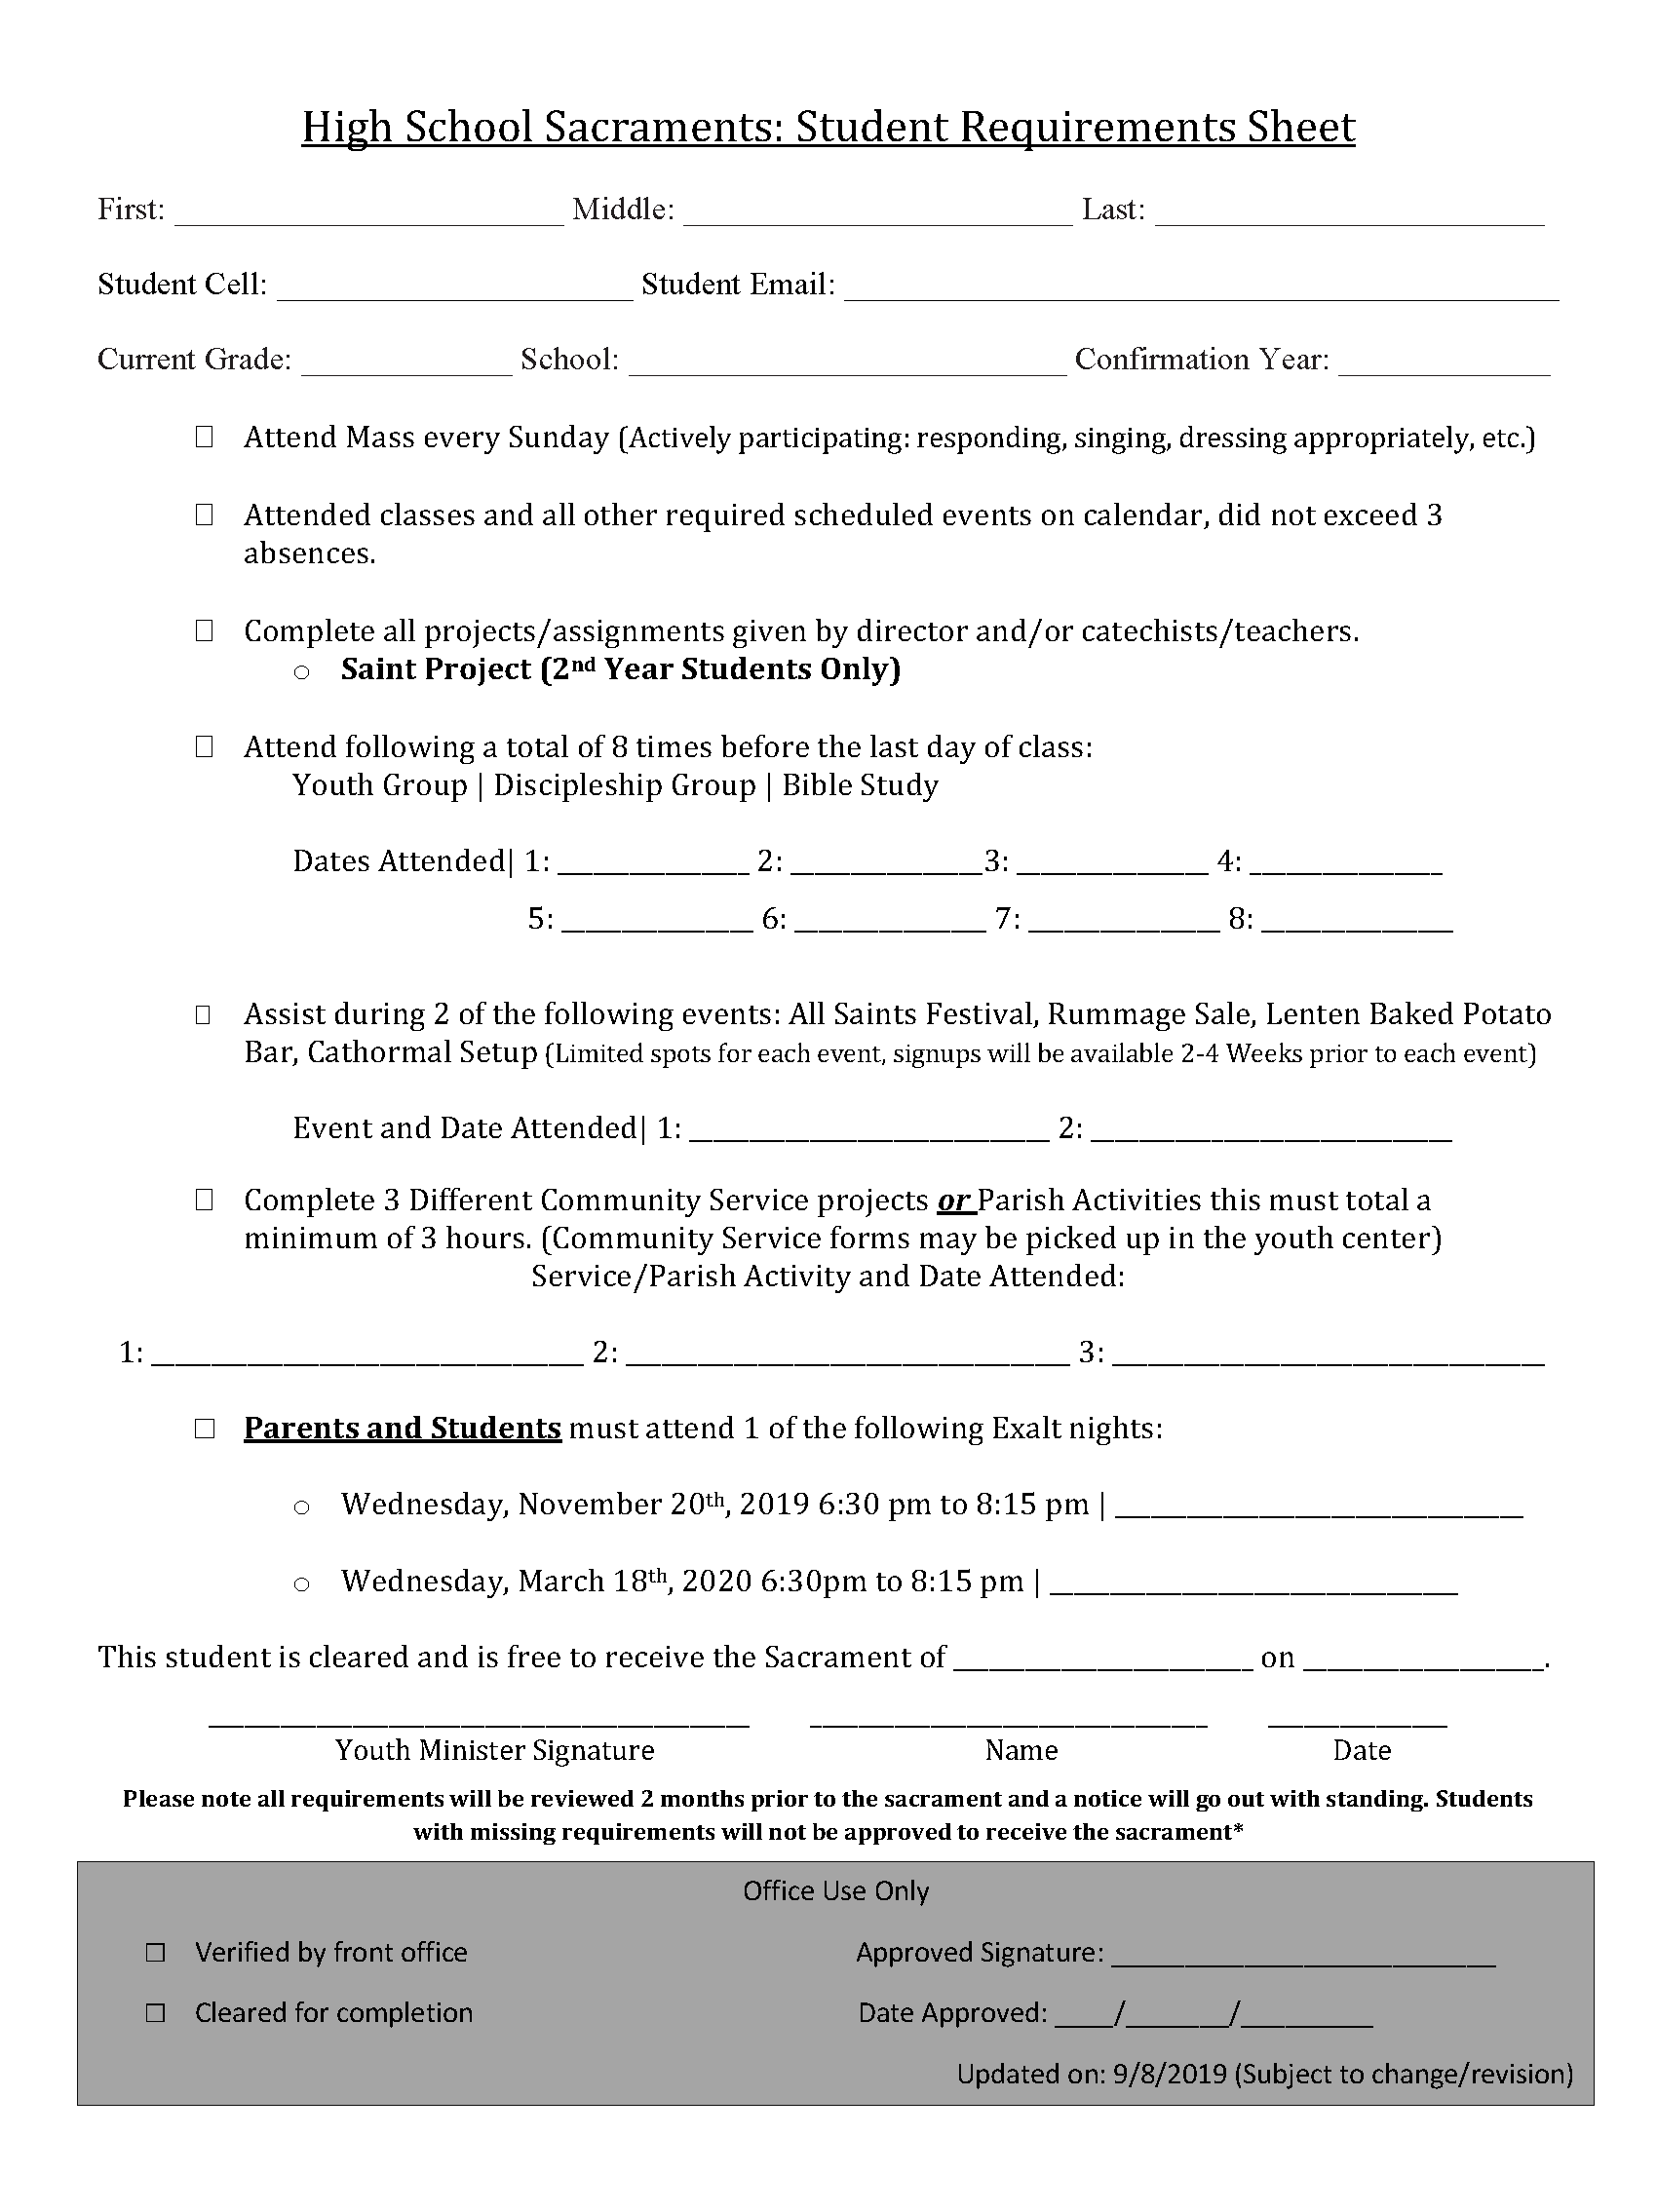 Requirements Form 2019.2020.png